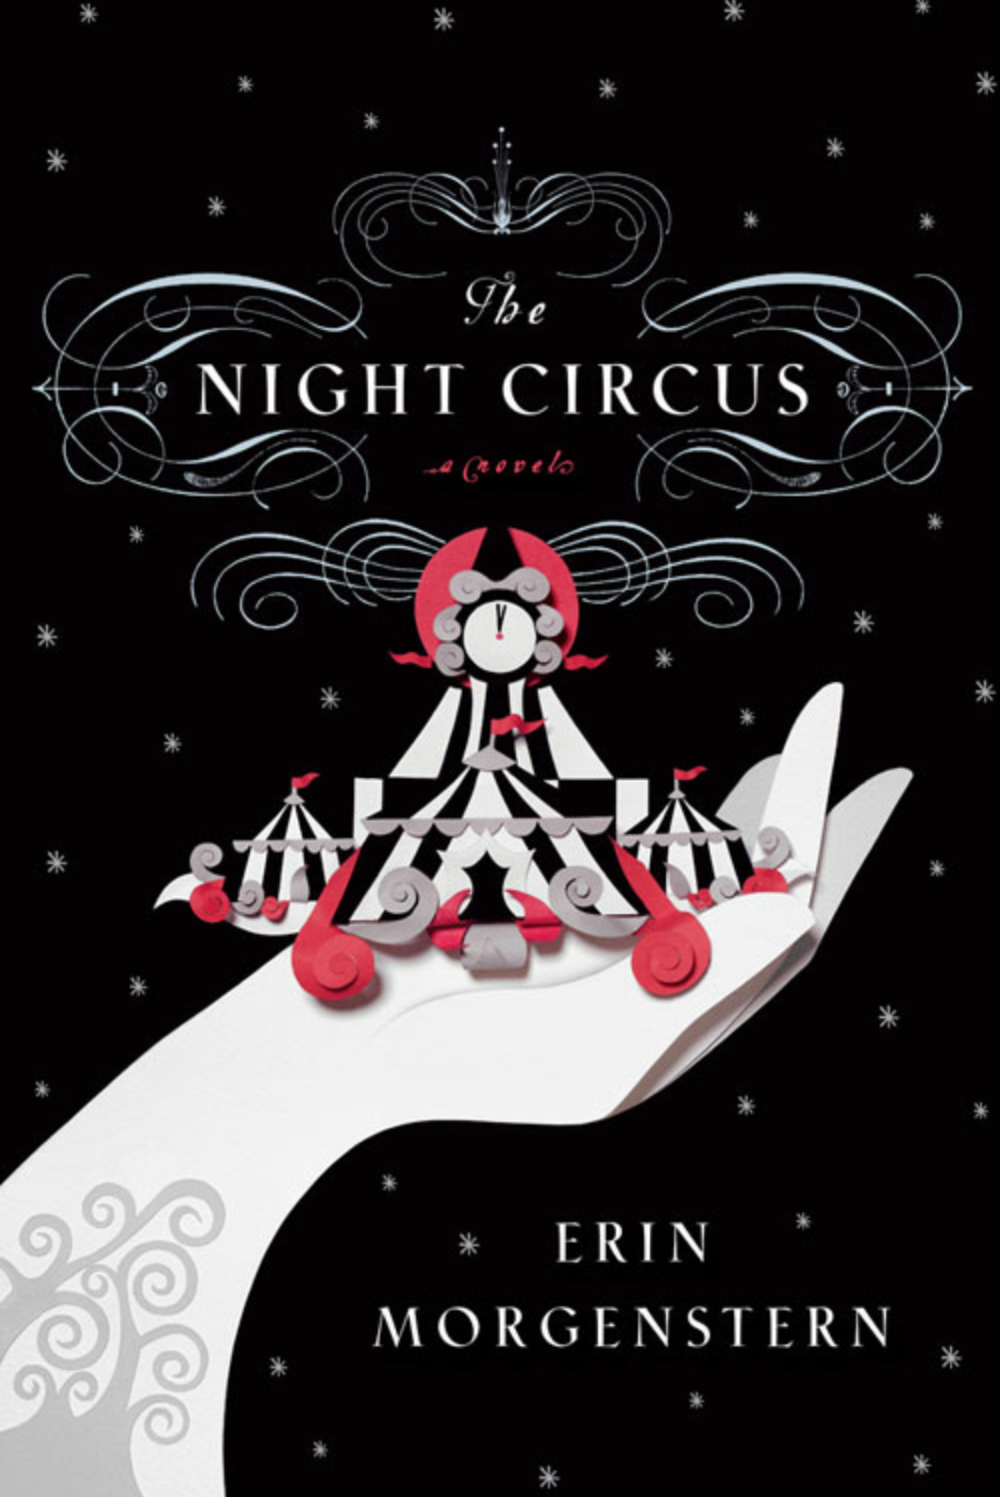 The Night Circus BY ERIN MORGENSTERN FIRST PUBLISHED BY ANCHOR, SEPTEMBER 13, 2011 GENRES: Fantasy, Adult Fiction, Romance, Historical Fiction PAGES: 512 FORMAT: Paperback SOURCE: PURCHASED PACING: {5/5}